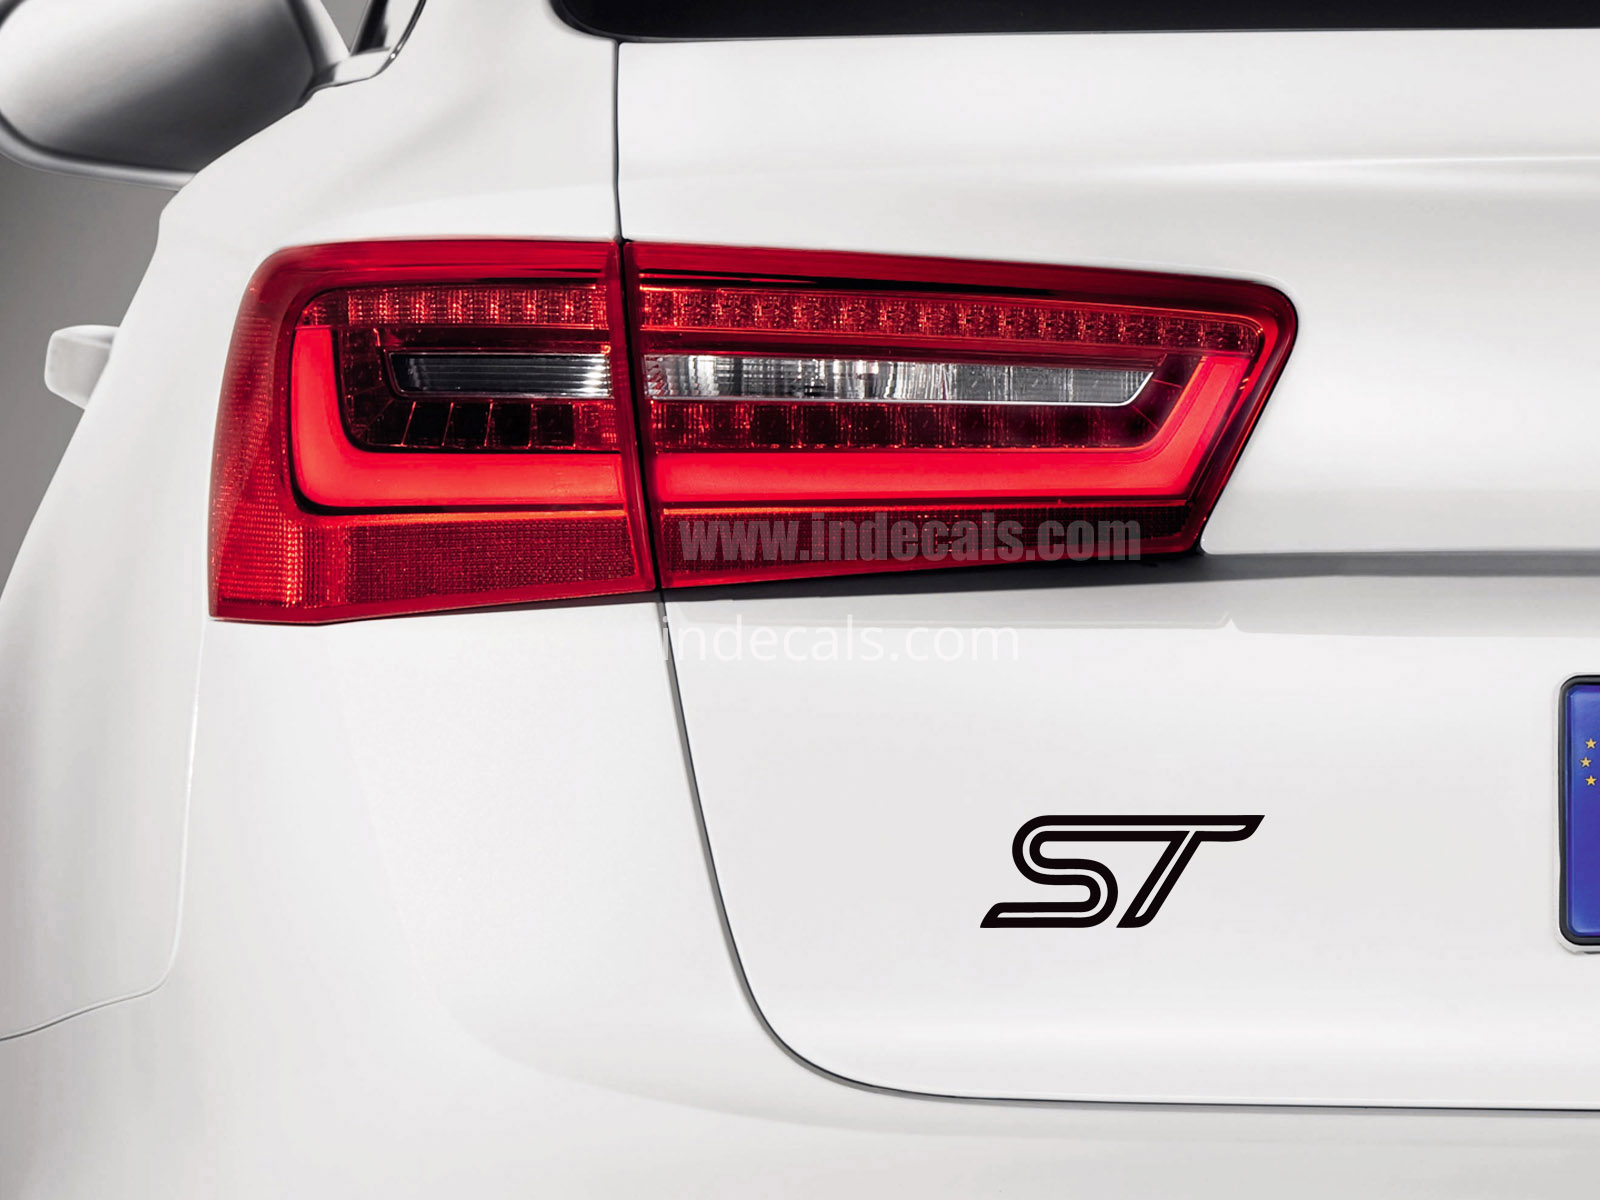 3 x Ford ST Stickers for Trunk - Black